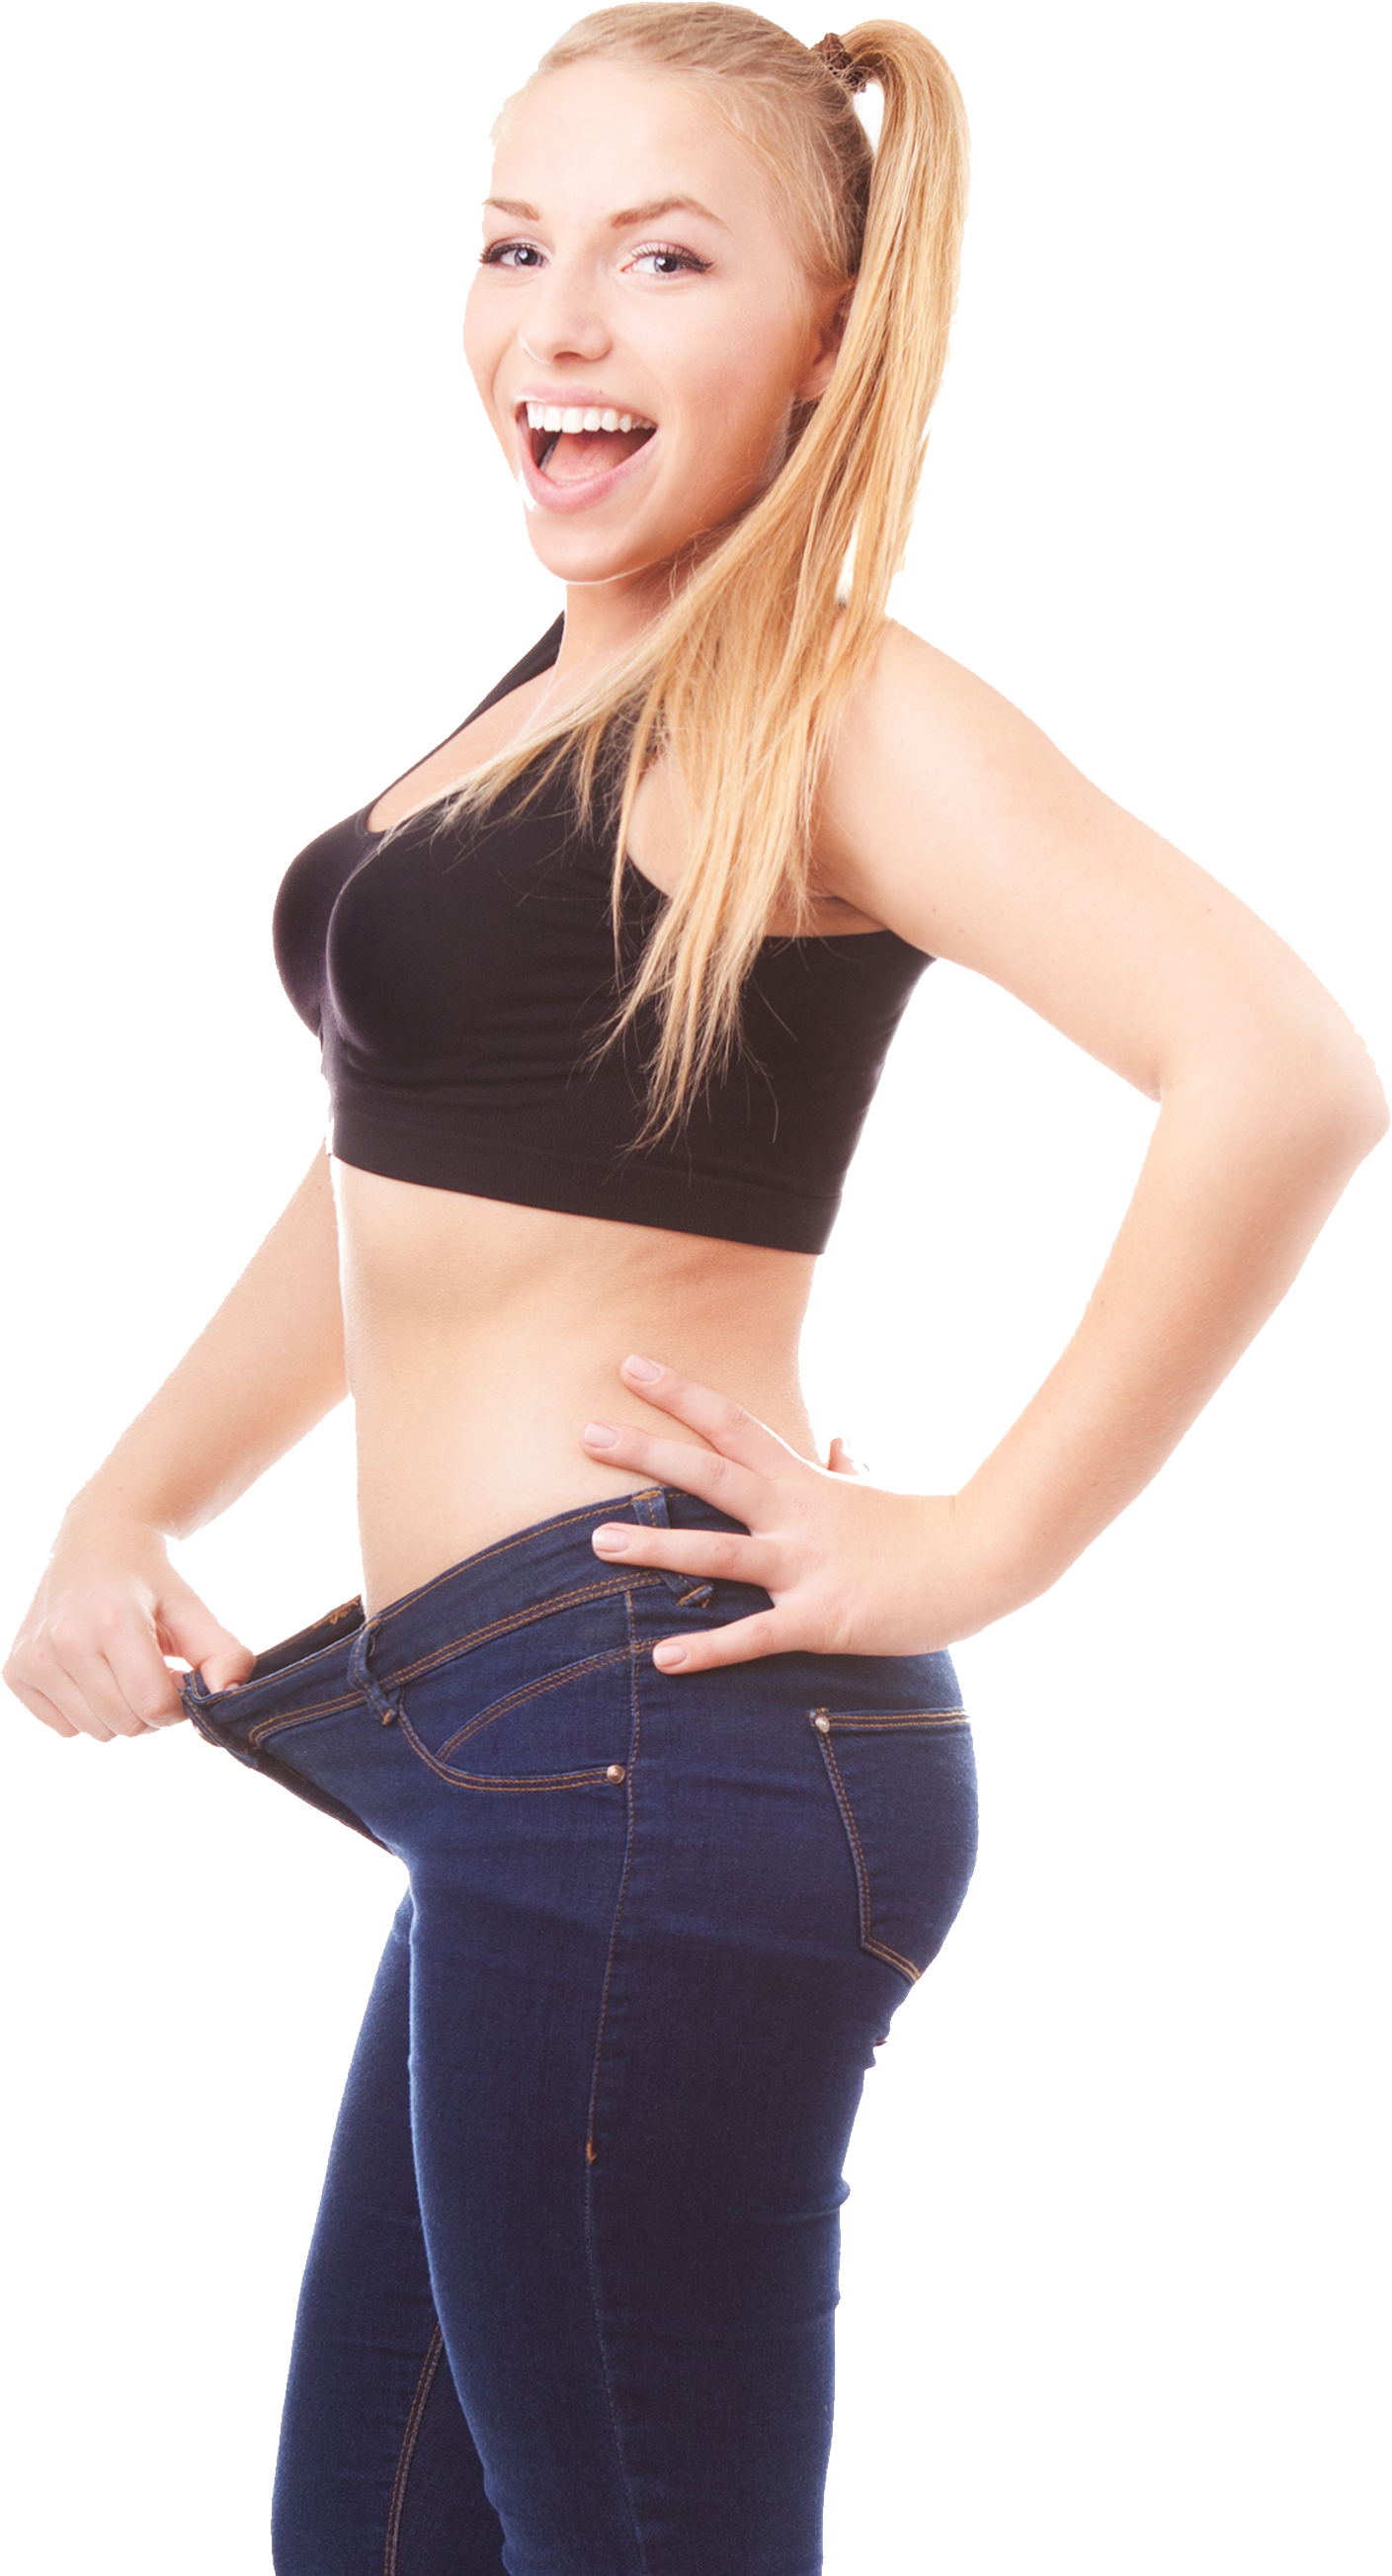 Weight Loss PNG Transparent Images.